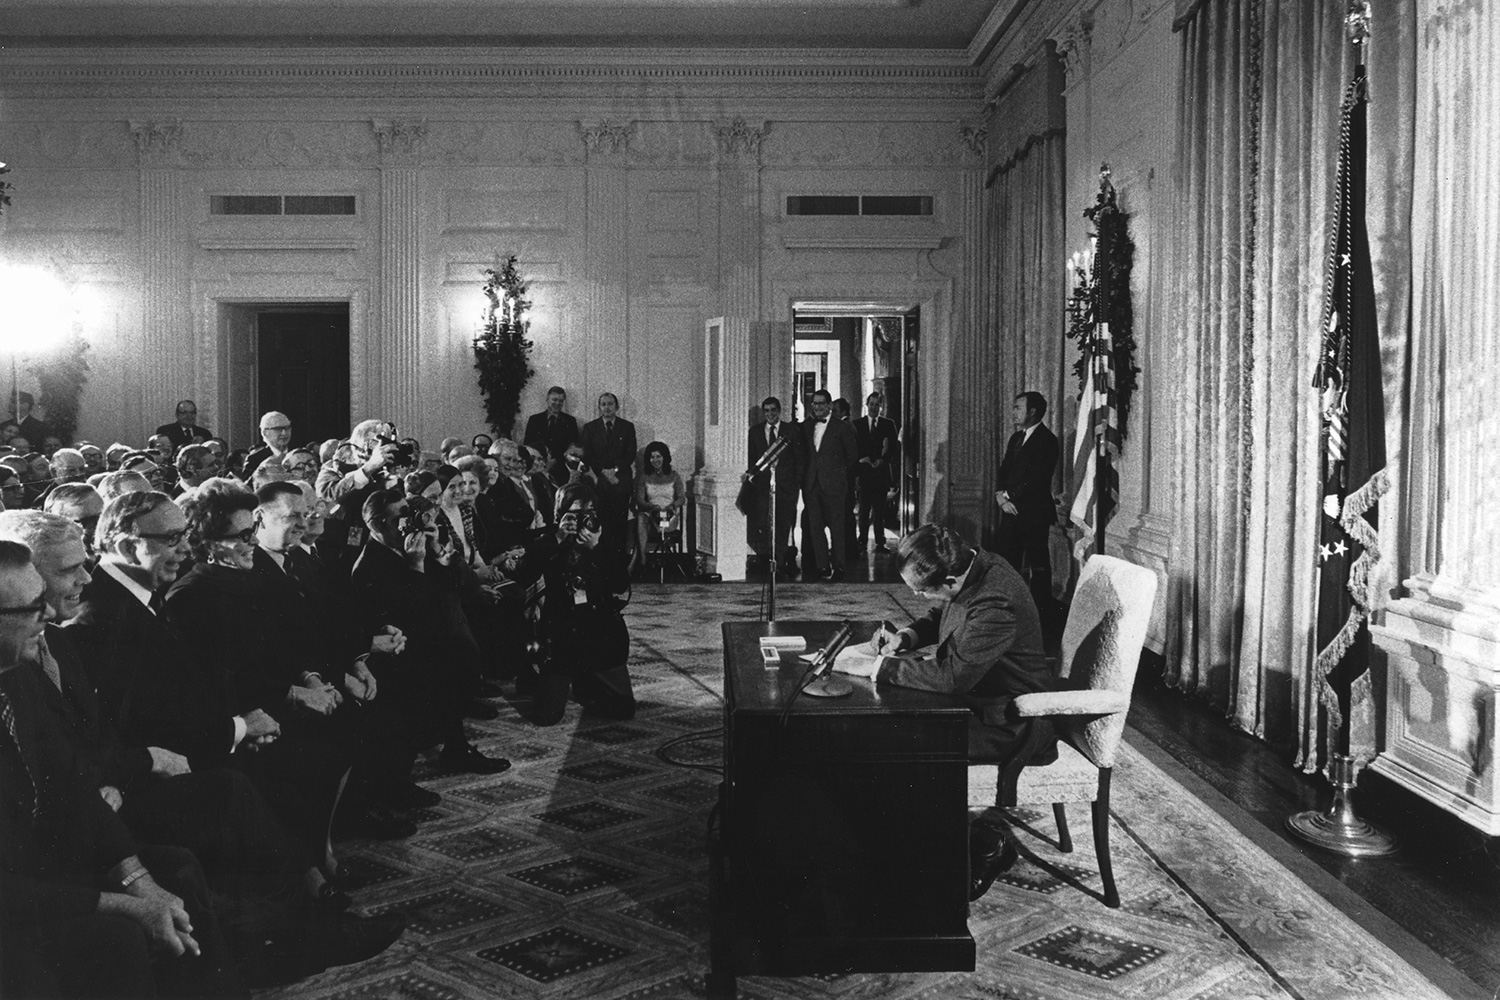 The image shows Nixon at his desk, his head down, signing the bill. In front of him is a large audience of people, many of whom are smiling broadly.